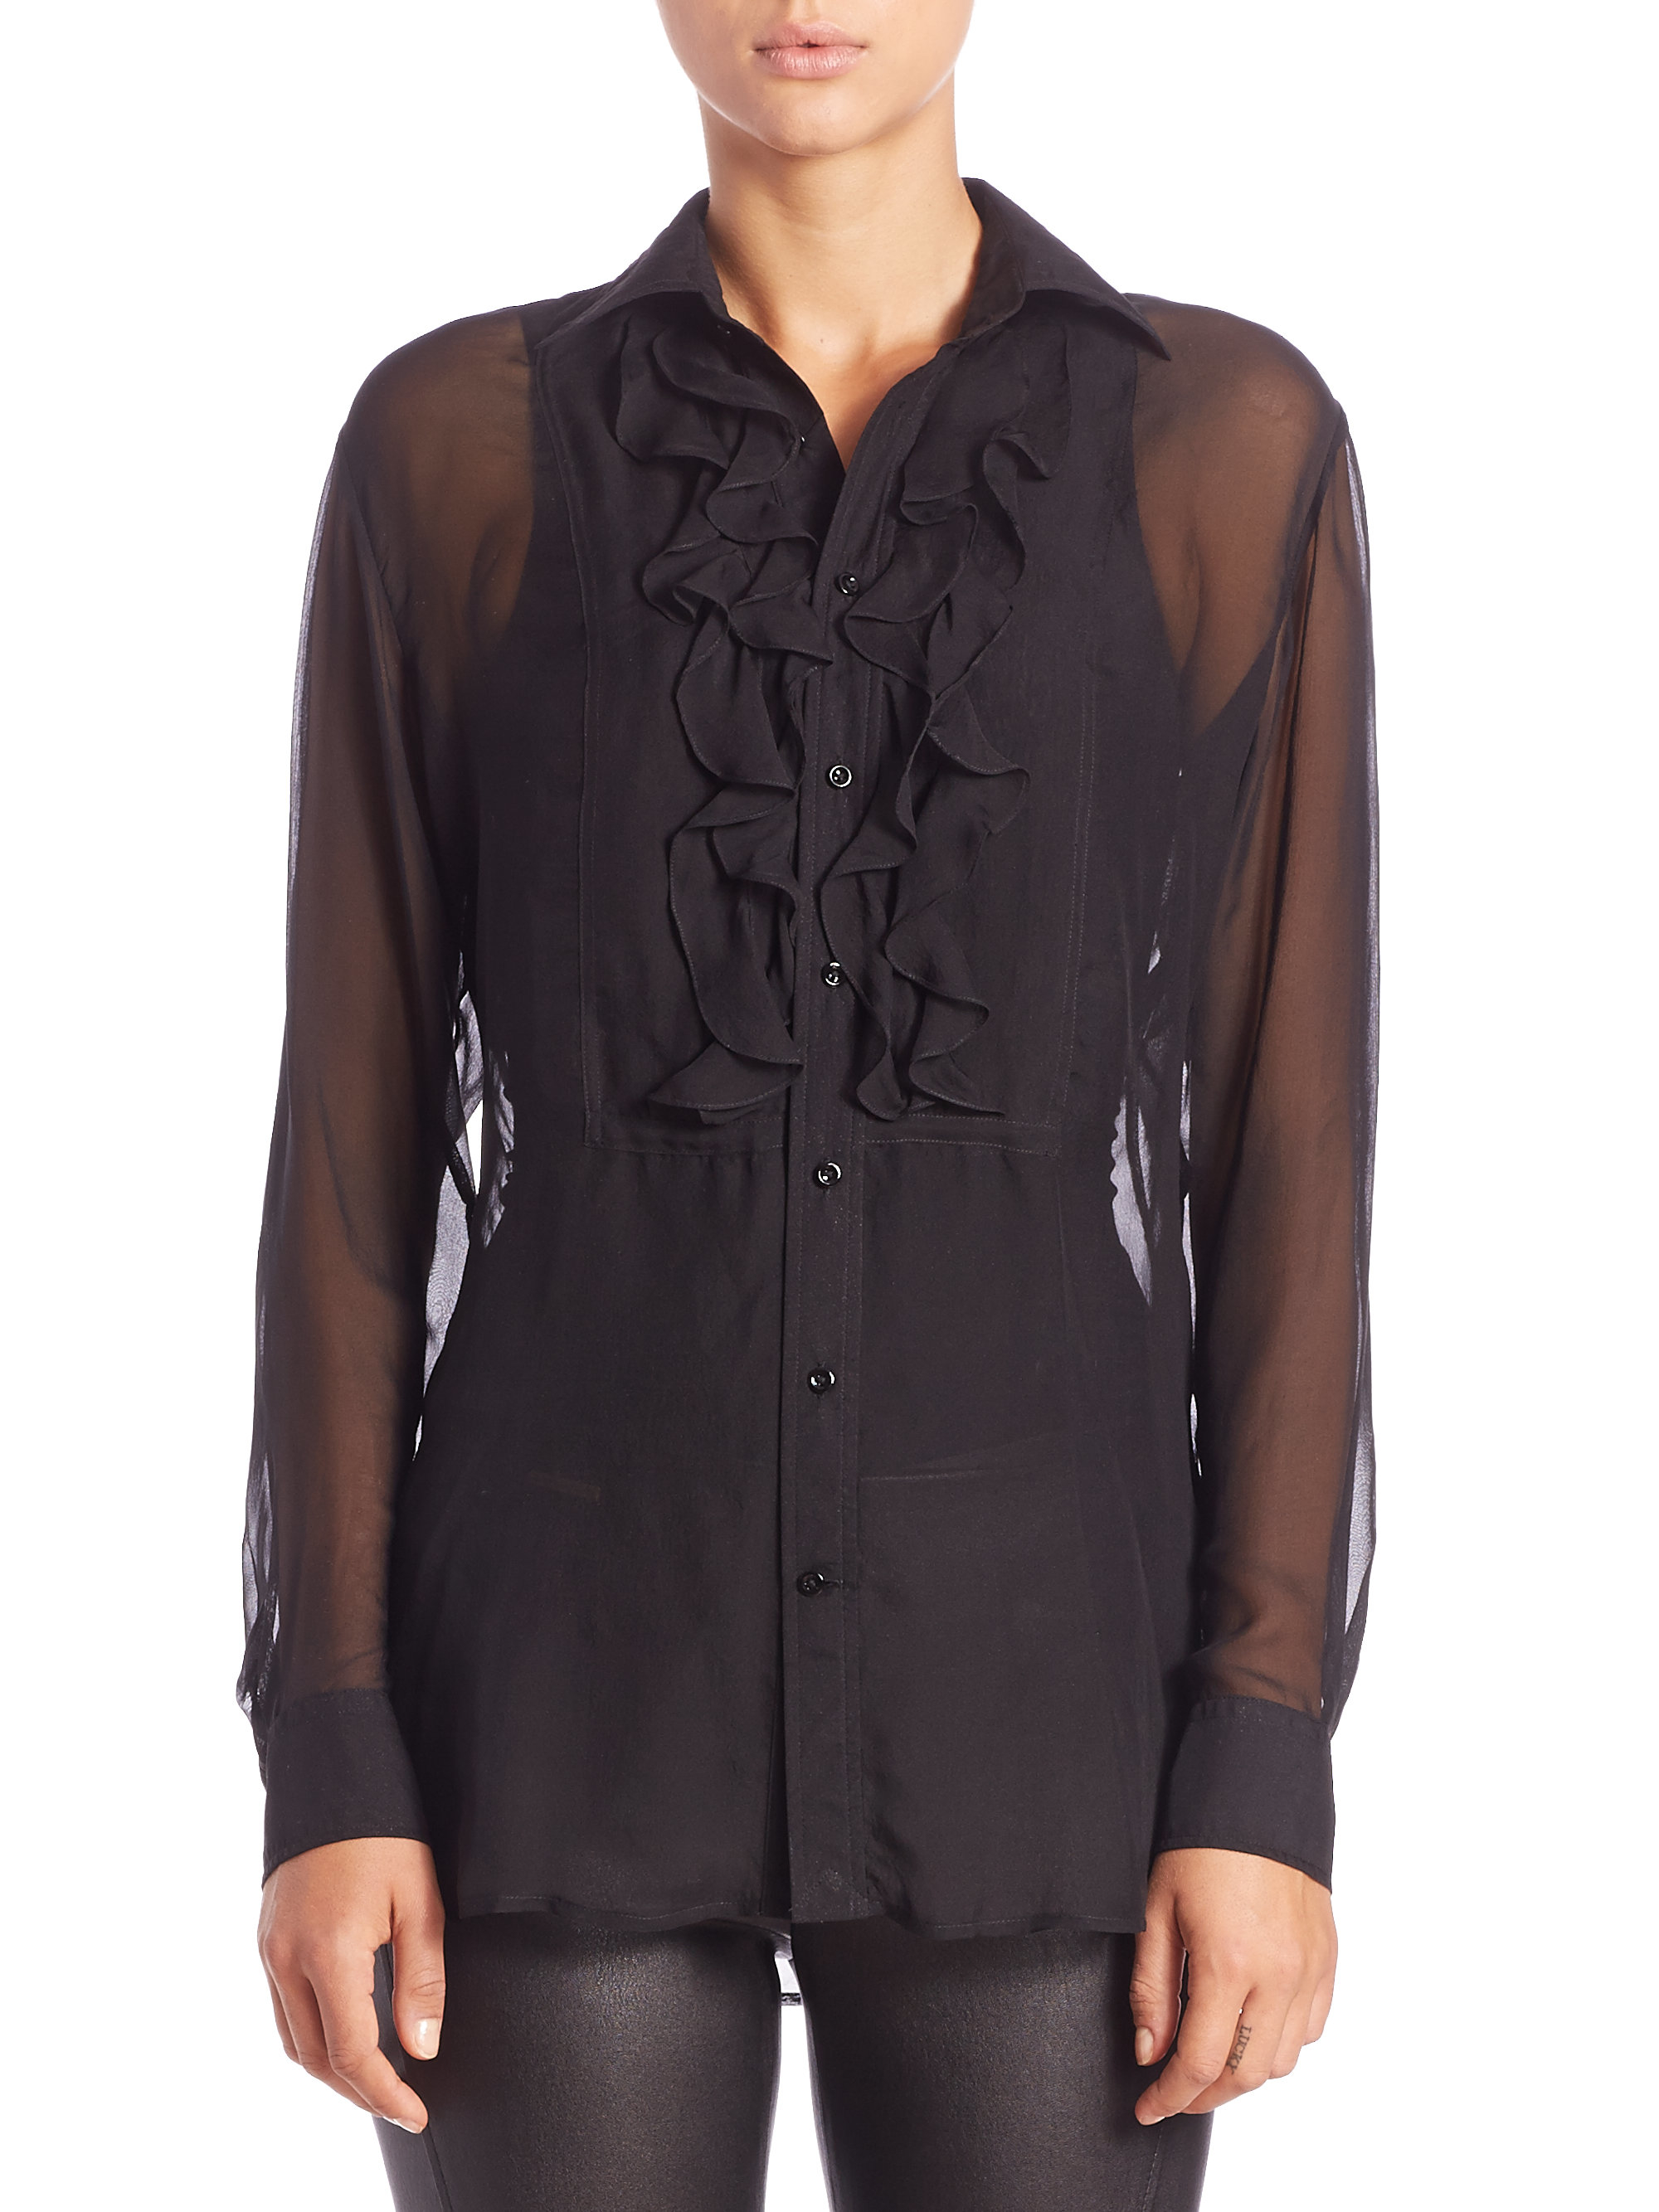 polo ralph lauren silk chiffon ruffled blouse in black lyst. Black Bedroom Furniture Sets. Home Design Ideas